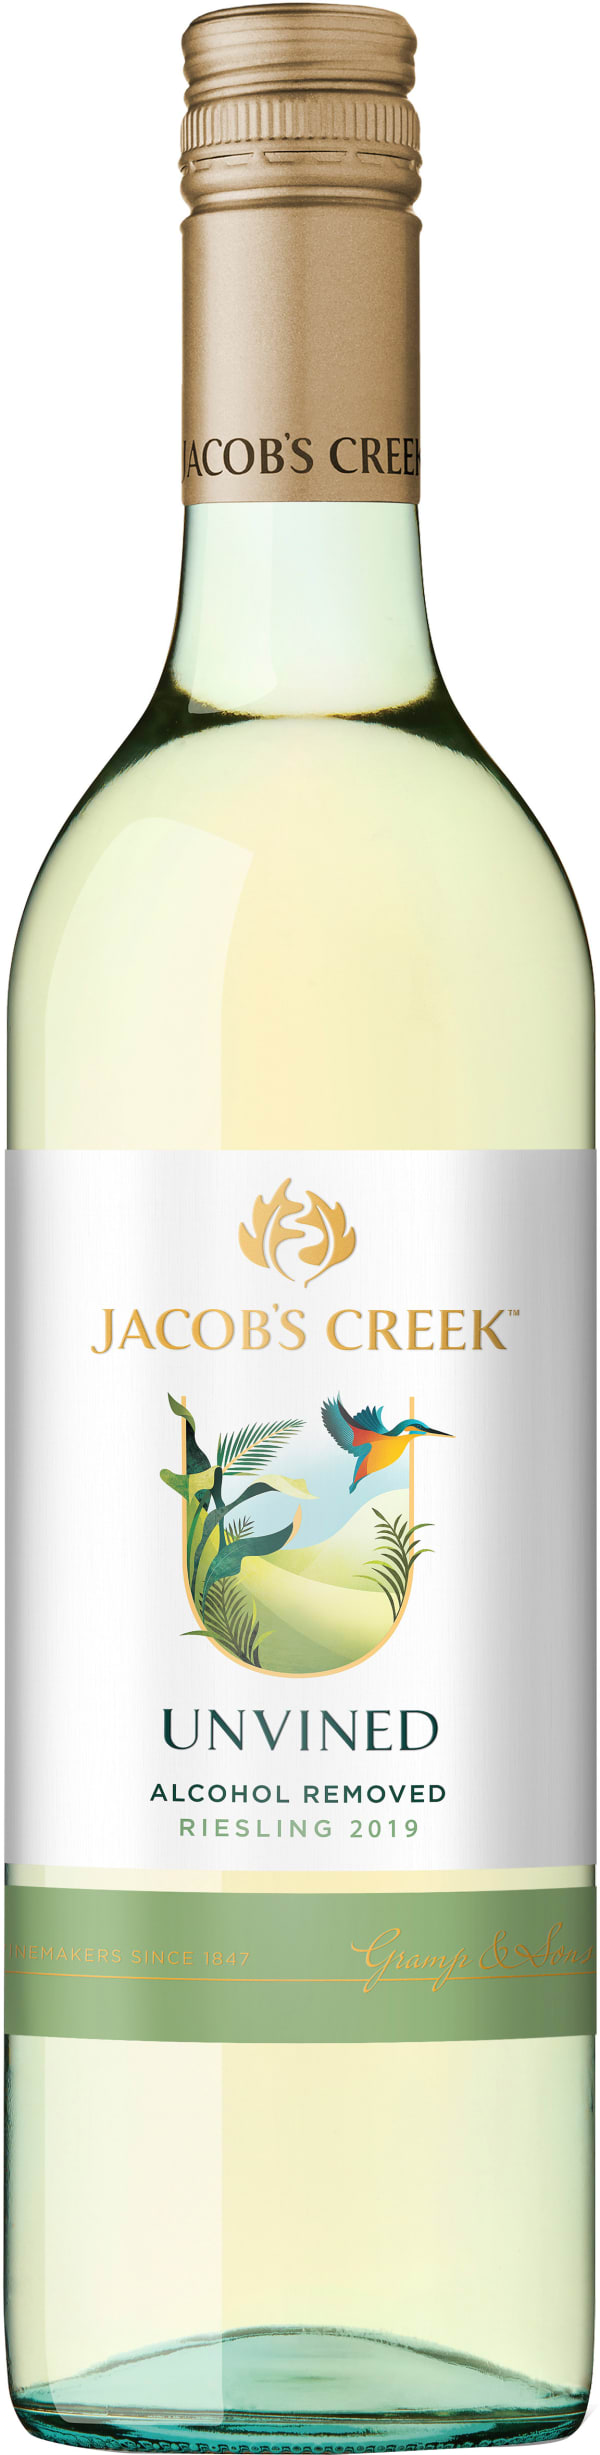 Jacob's Creek UnVined Riesling 2020